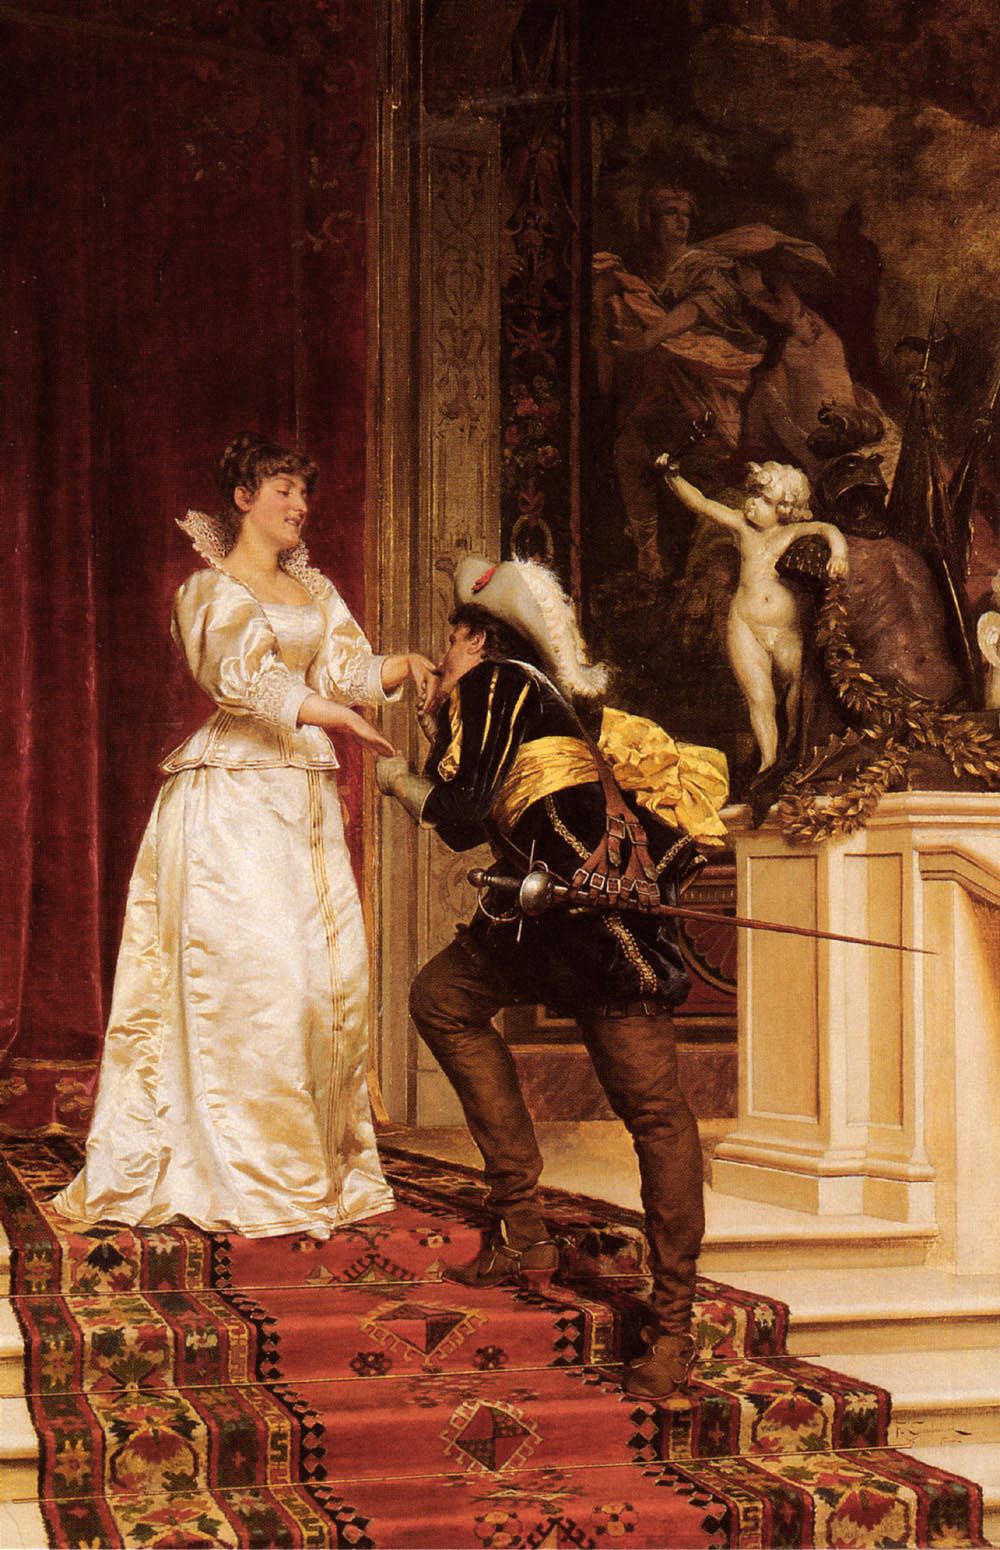 https://i1.wp.com/upload.wikimedia.org/wikipedia/commons/2/2f/Fr%C3%A9d%C3%A9ric_Soulacroix_-_The_Cavalier%27s_Kiss.jpg